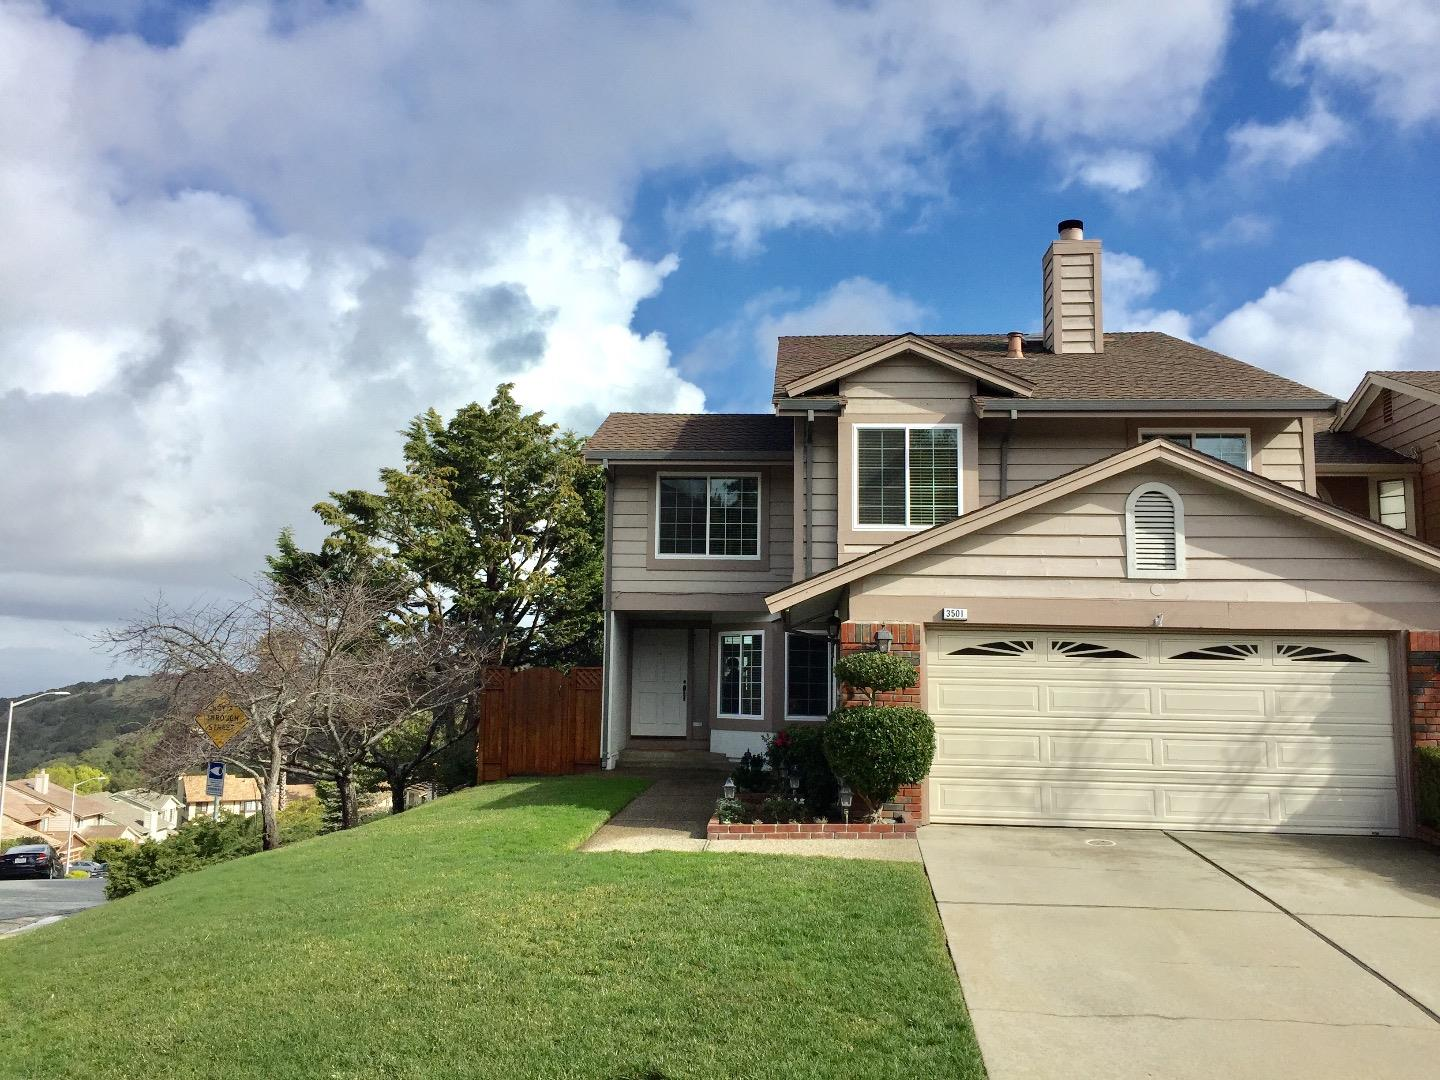 Single Family Home for Rent at 3501 Broadview Court 3501 Broadview Court San Mateo, California 94403 United States